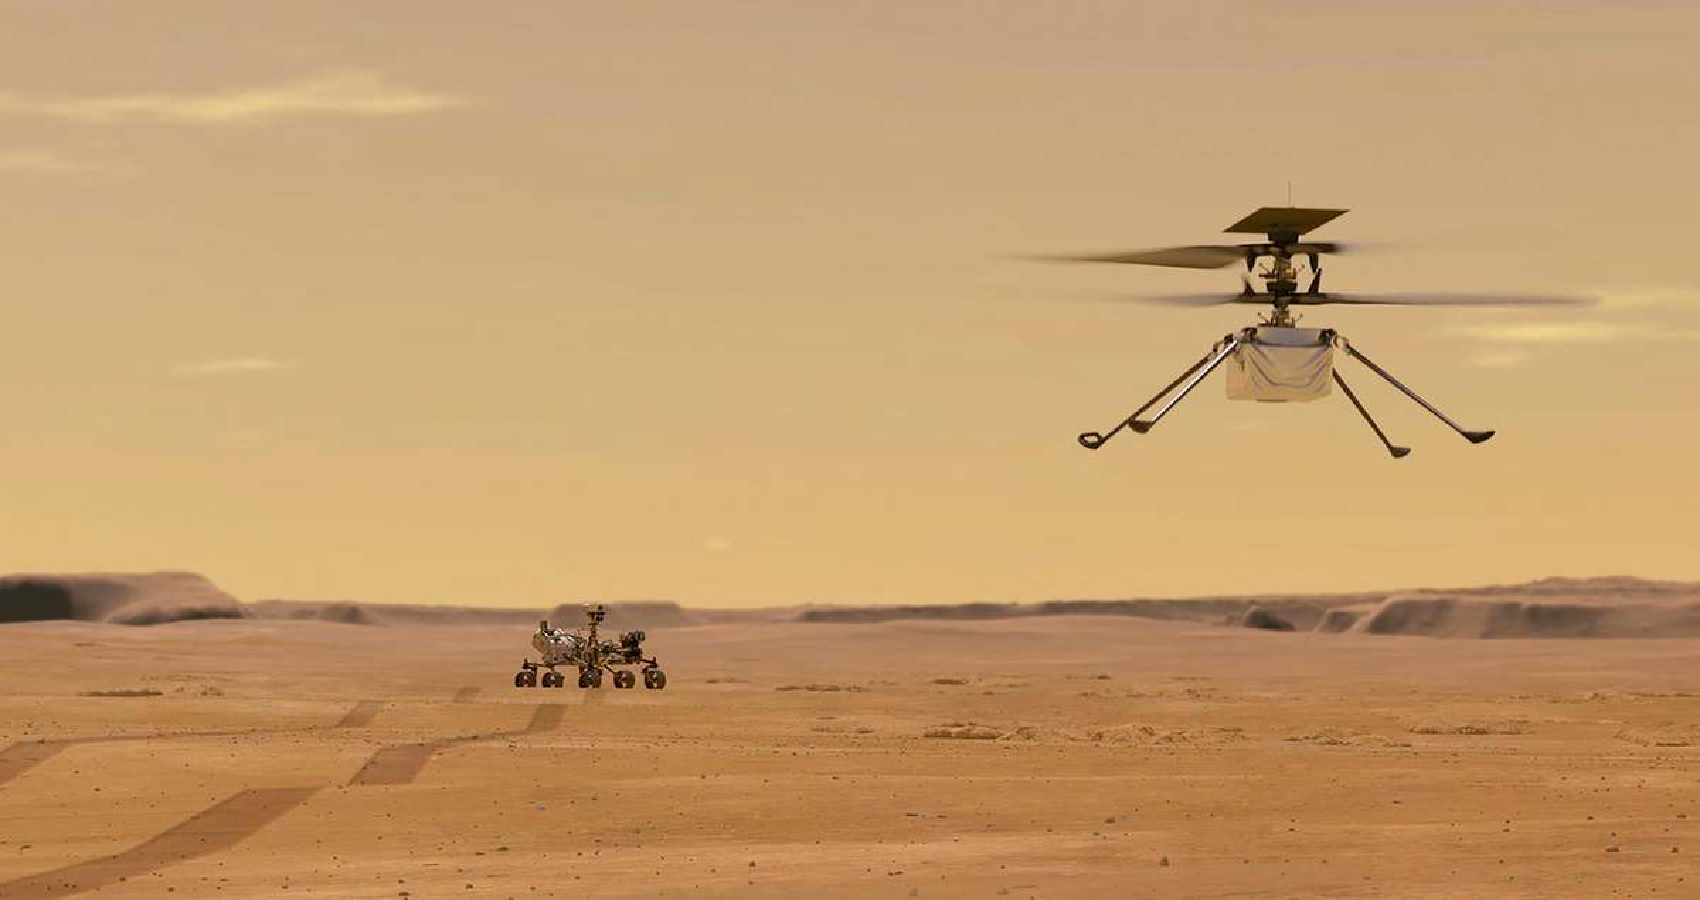 NASA's Mars Helicopter Completes First Flight on Another Planet